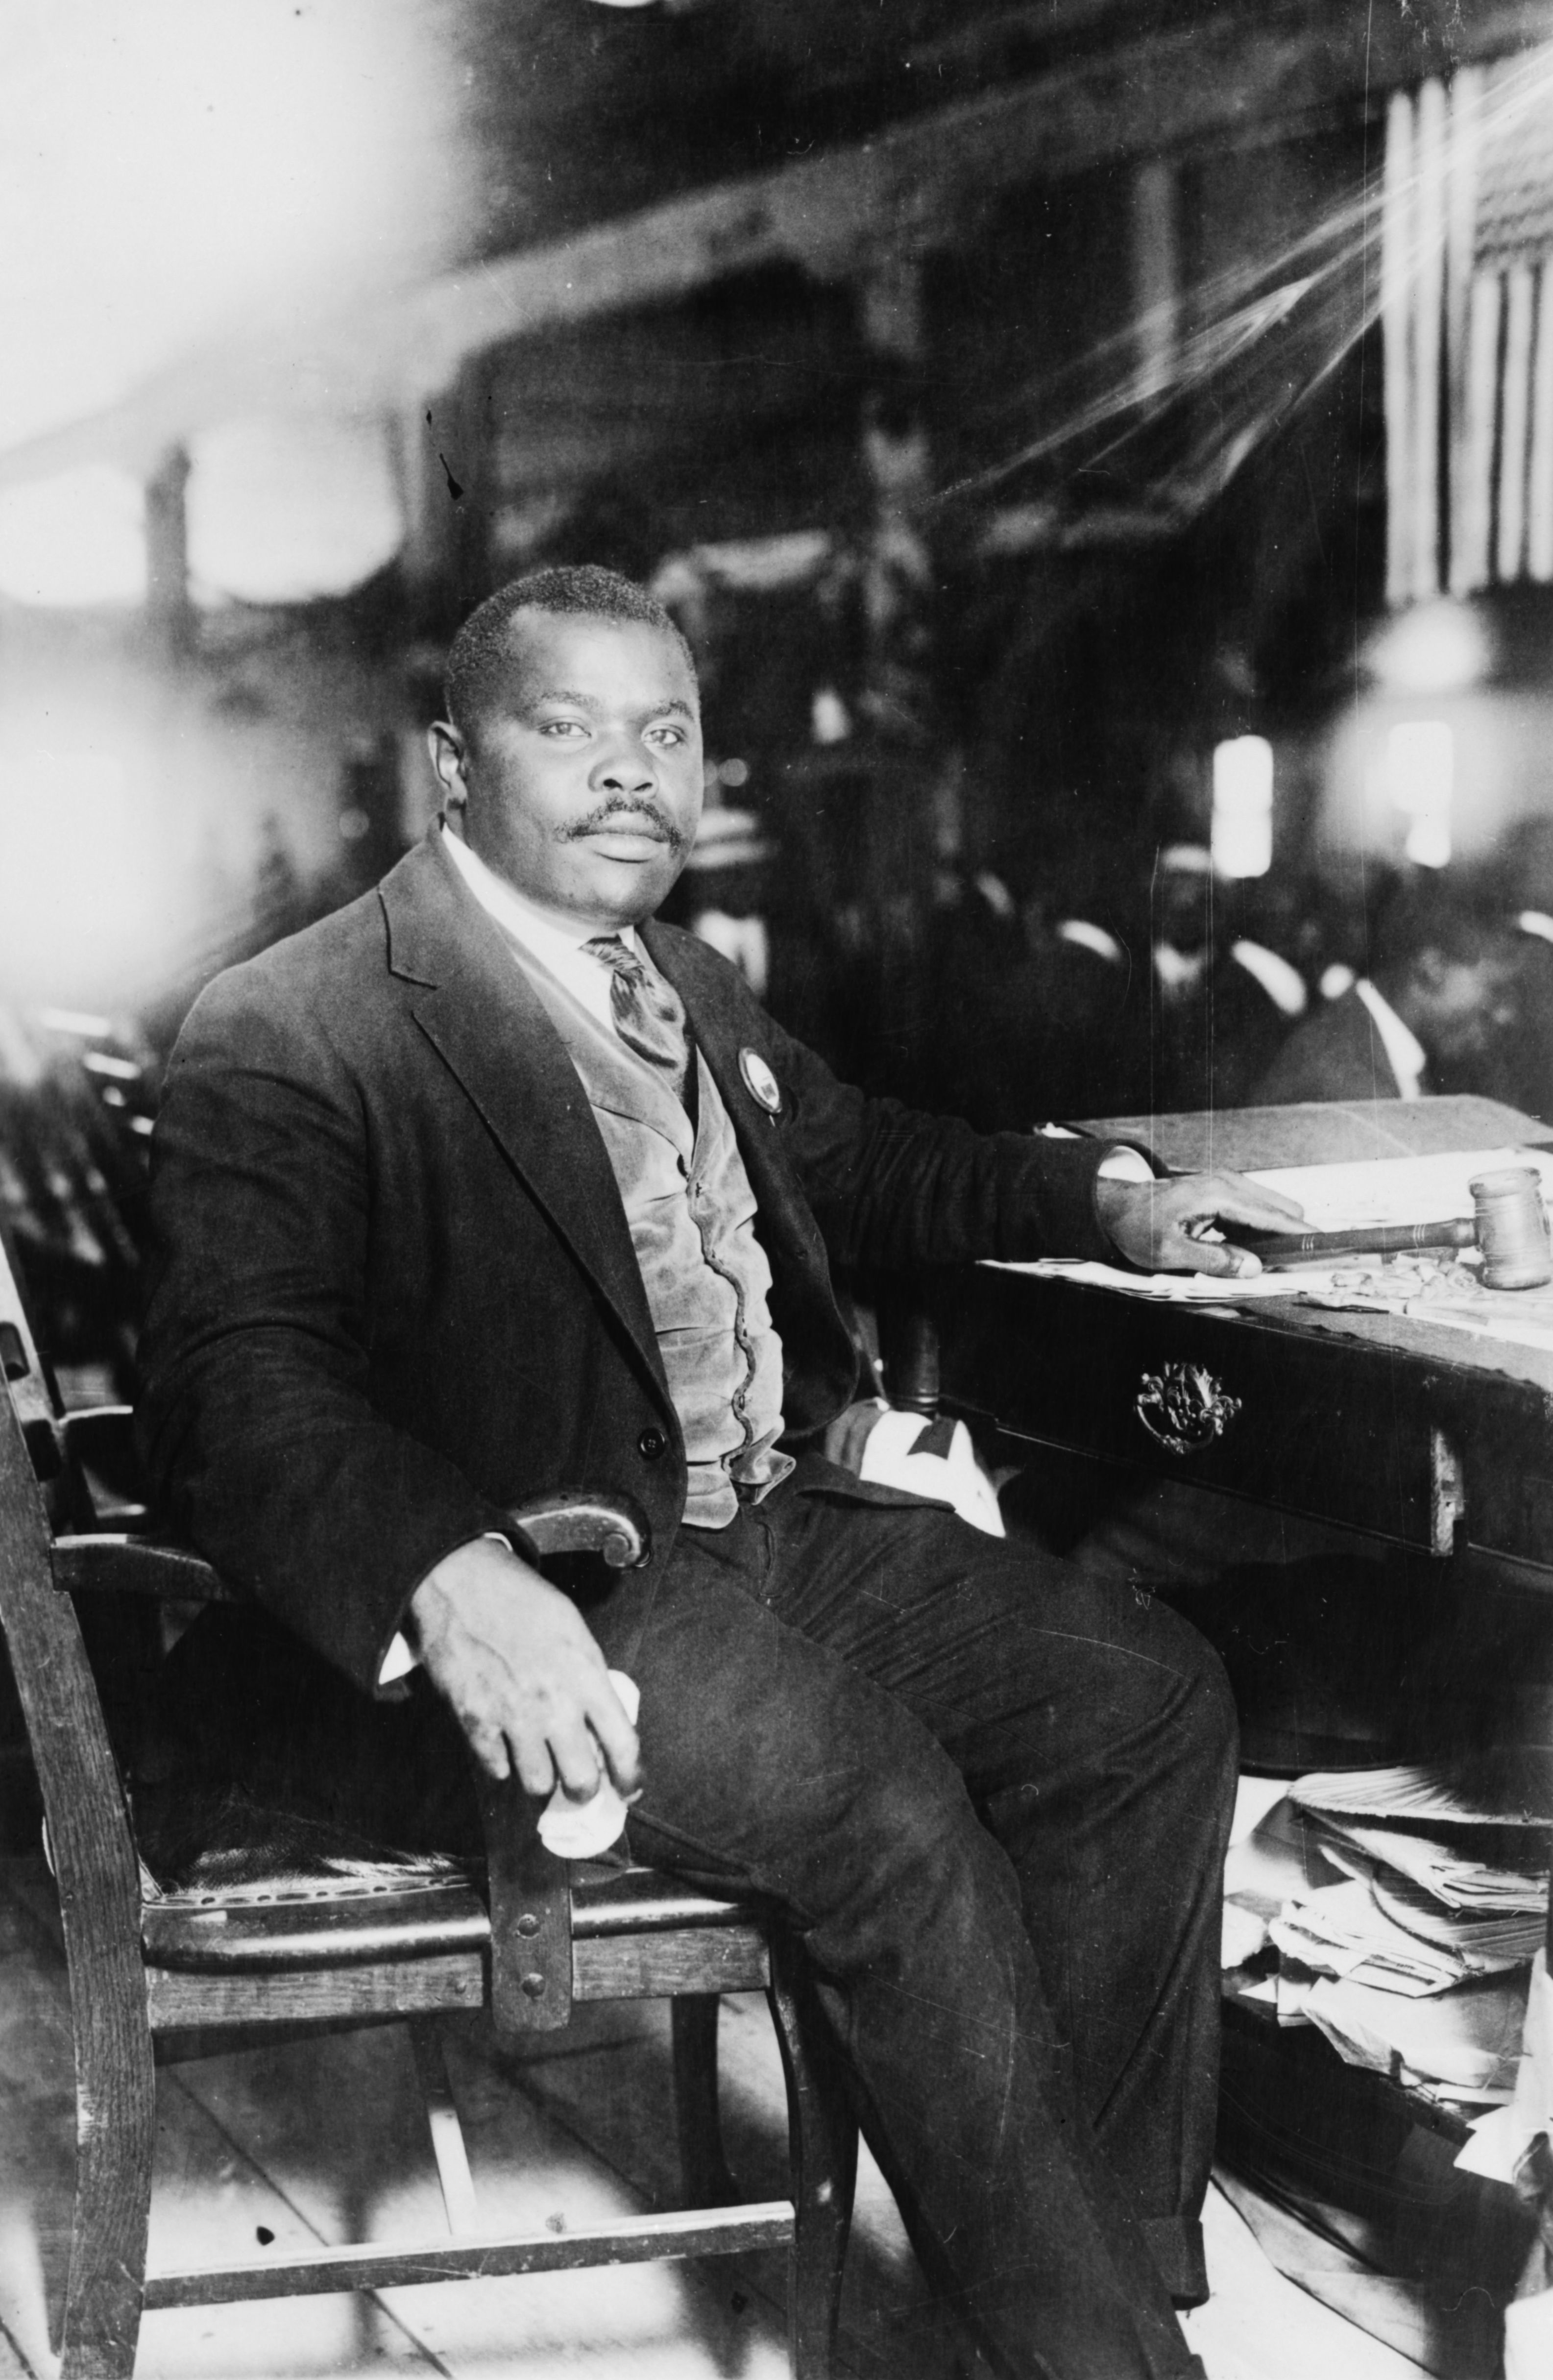 Depiction of Marcus Garvey